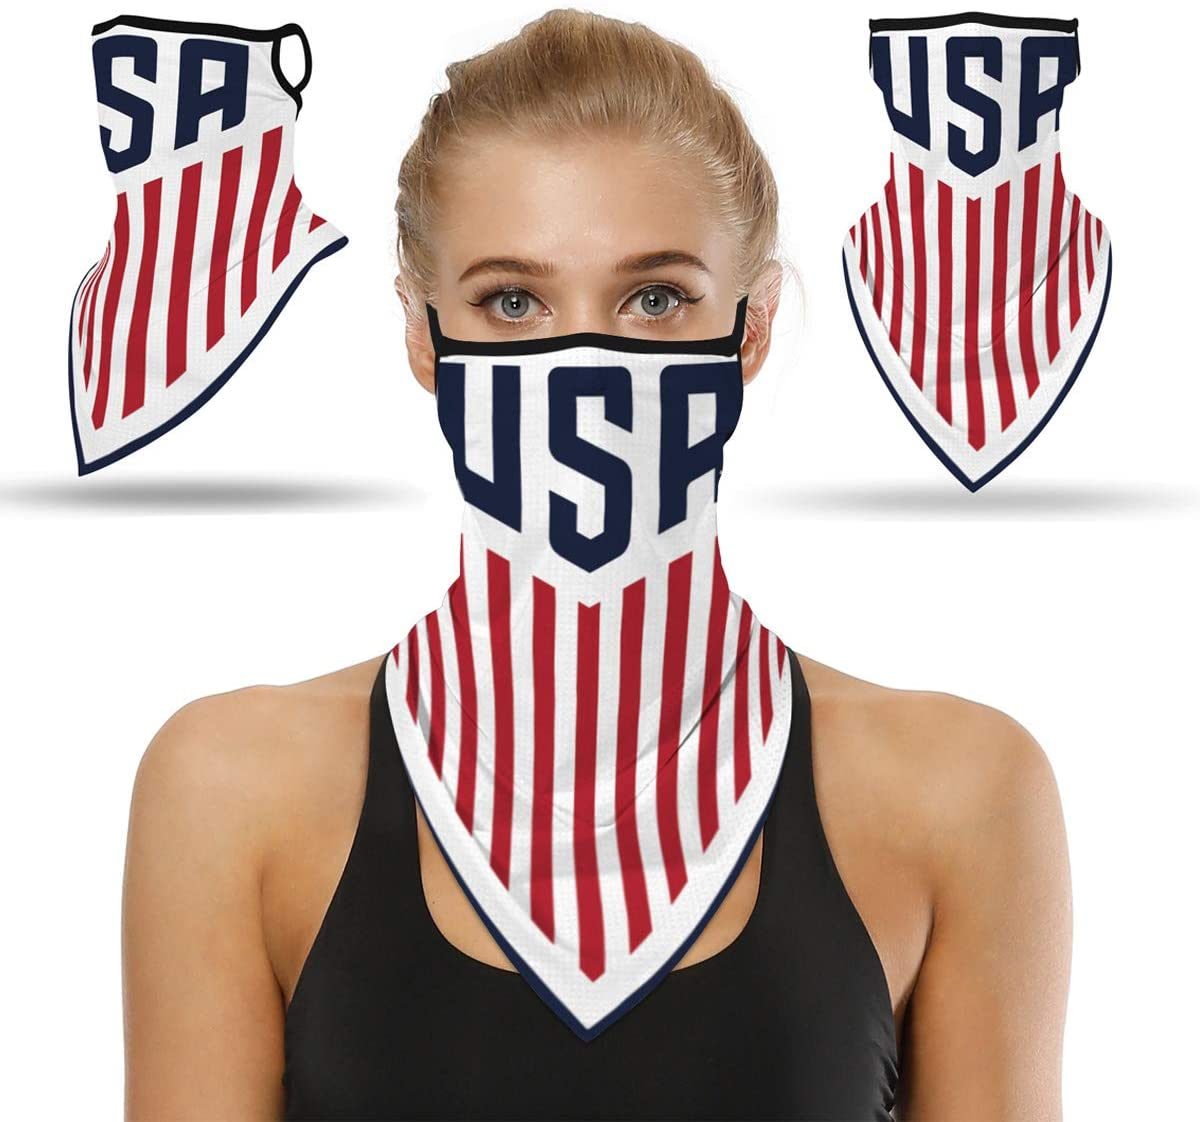 Artuxer Bandanas for Face Scarf Mask Ear Loops Stylish Face Rave Men Women Neck Gaiters for Dust Wind Motorcycle Mask